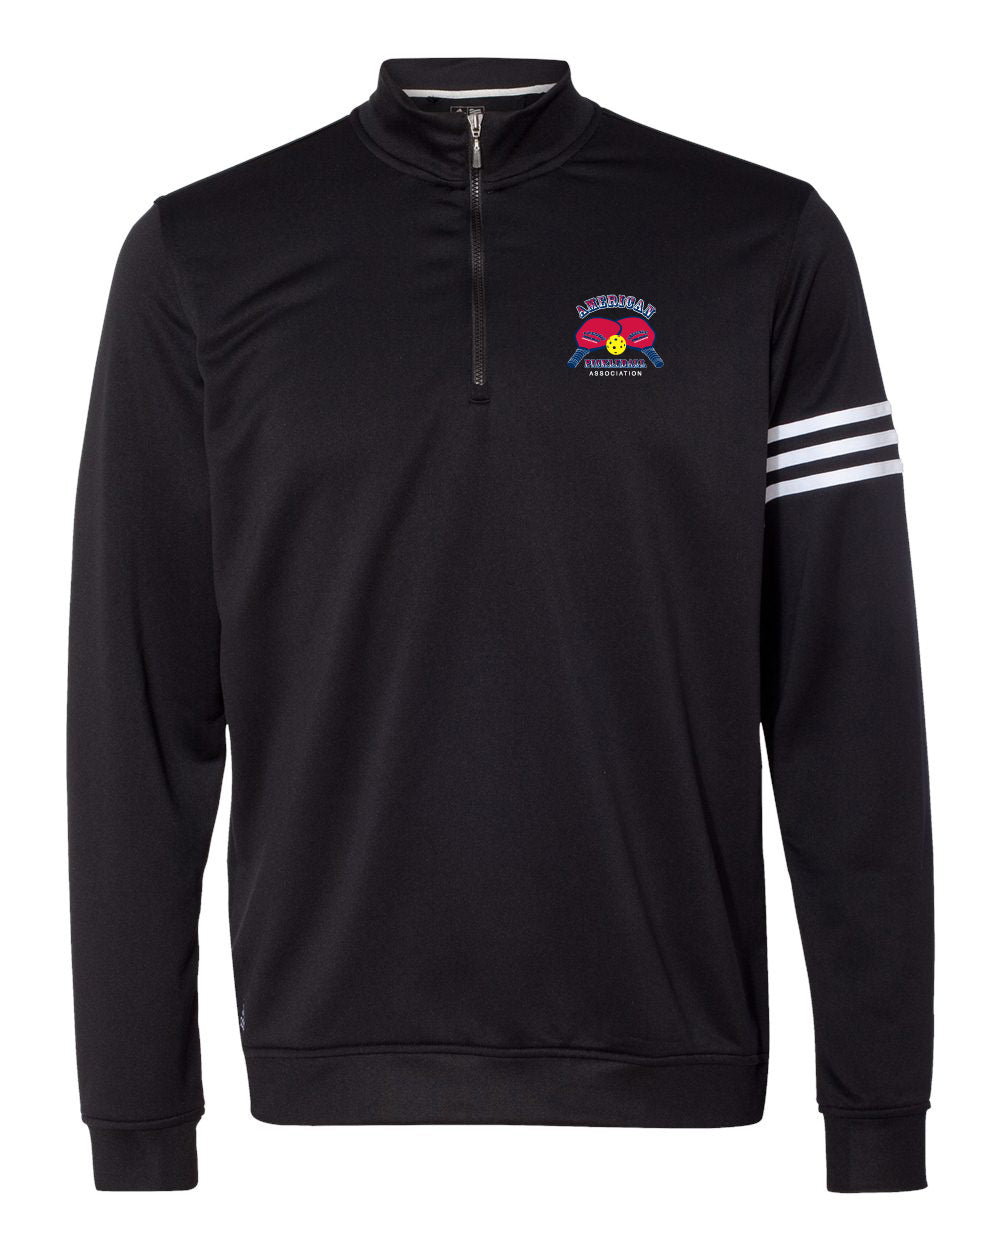 Adidas ClimaLite 3-Stripes French Terry Quarter-Zip Pullover